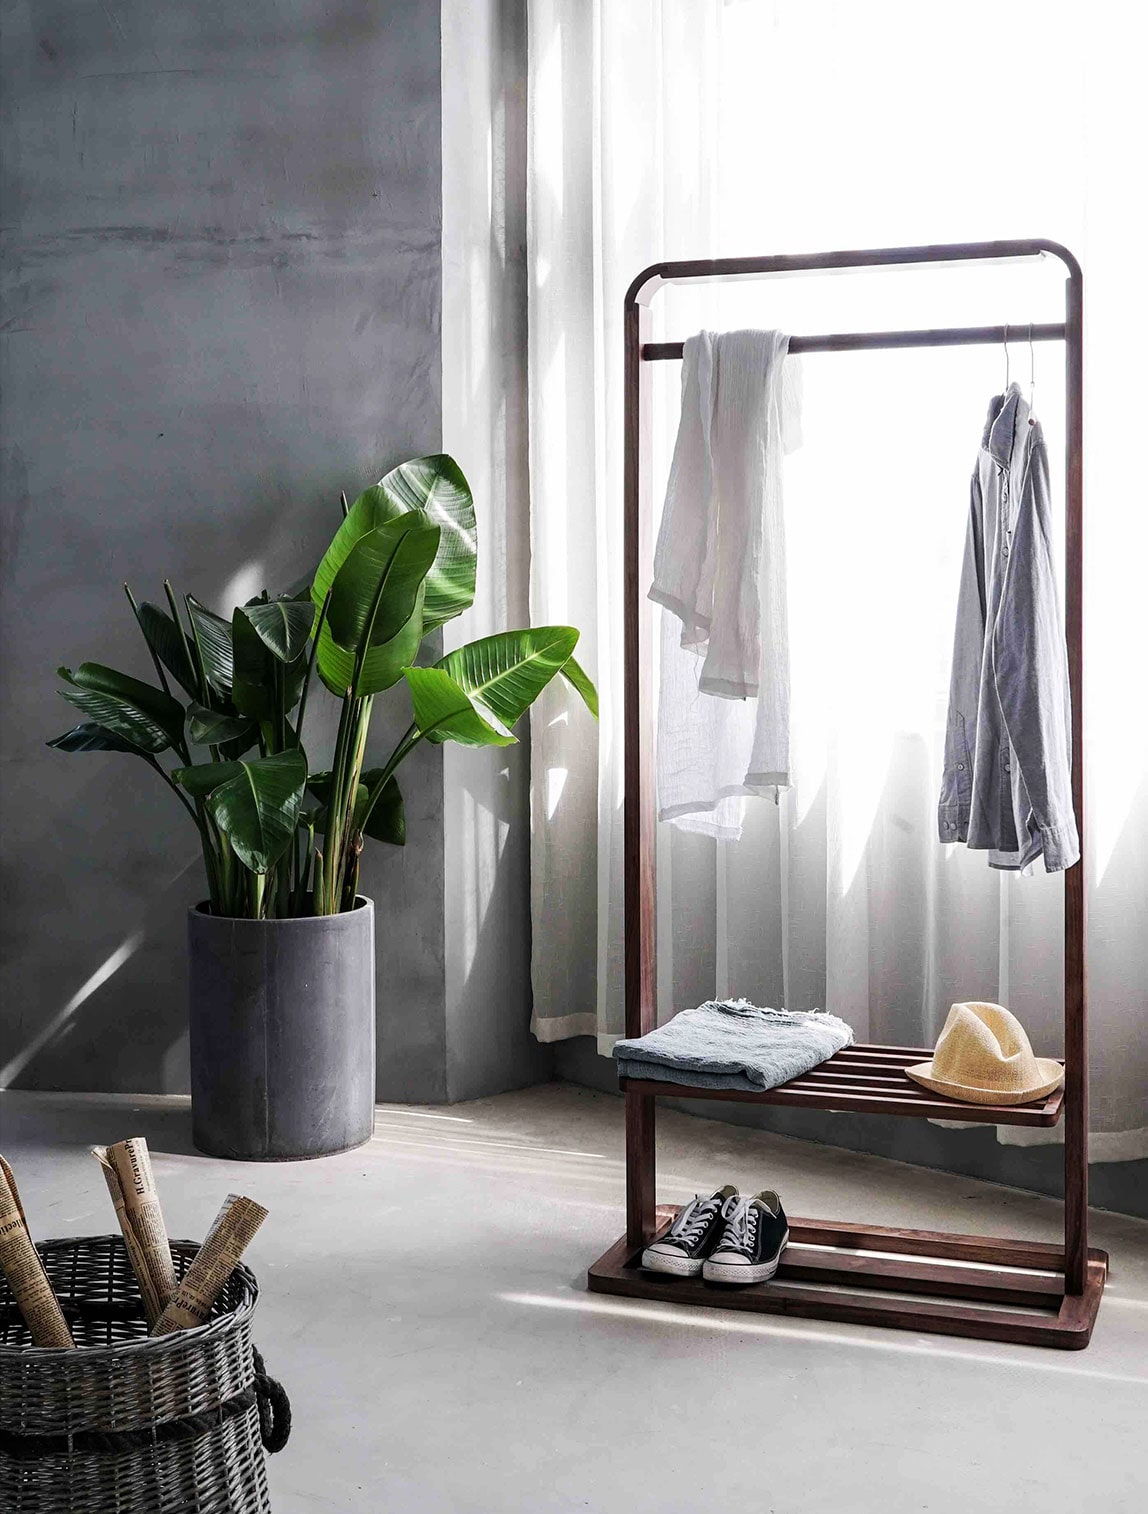 A modern bedroom featuring a clothing stand with two shirts, a fedora, a scarf and Converse shoes, a basket with rolled newspapers, a grey planter filled with greenery and white sheer curtains.